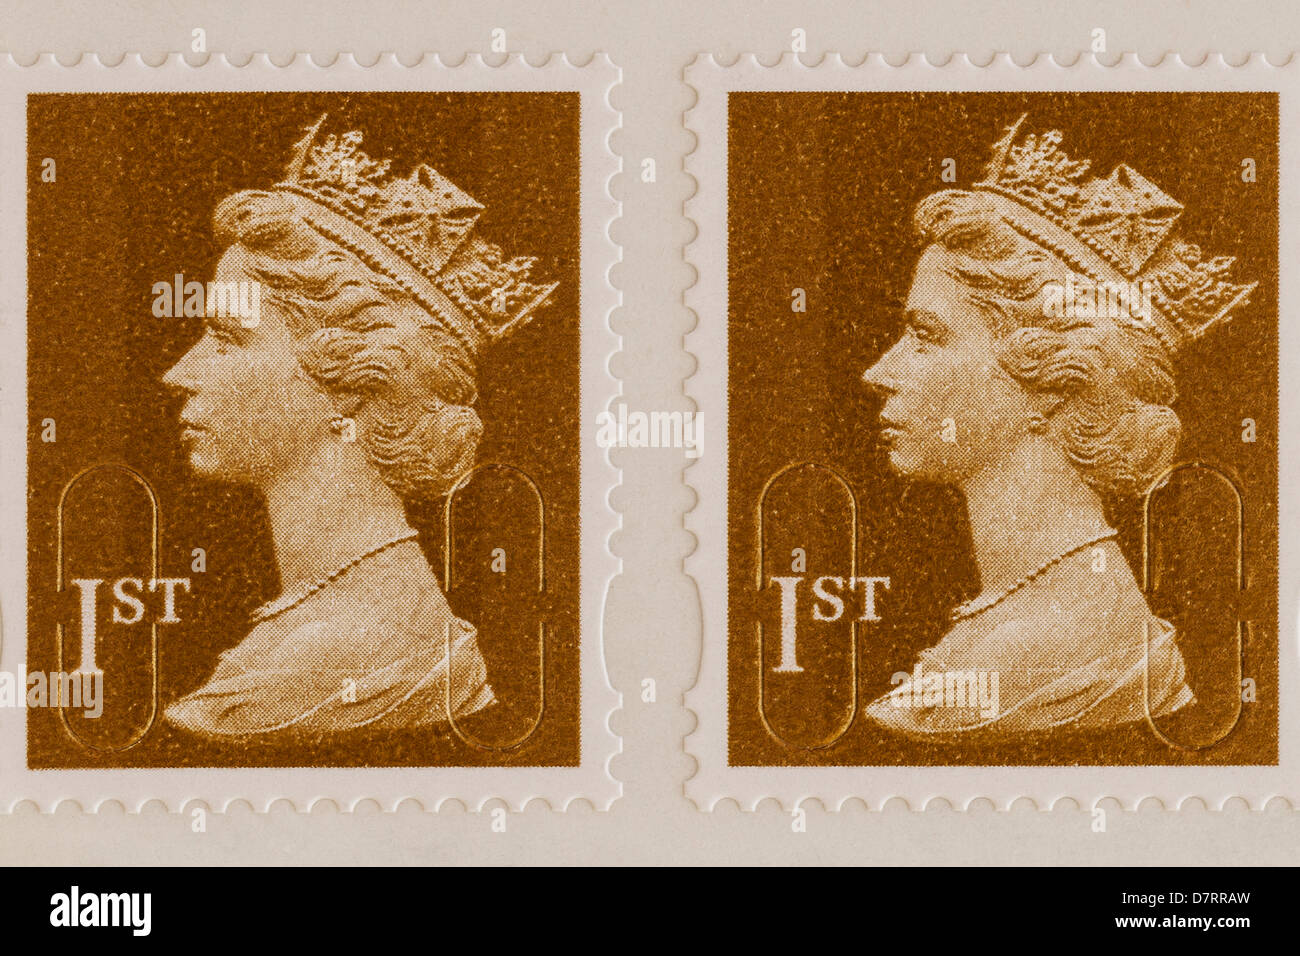 Royal Mail 1st class postage stamps - Stock Image